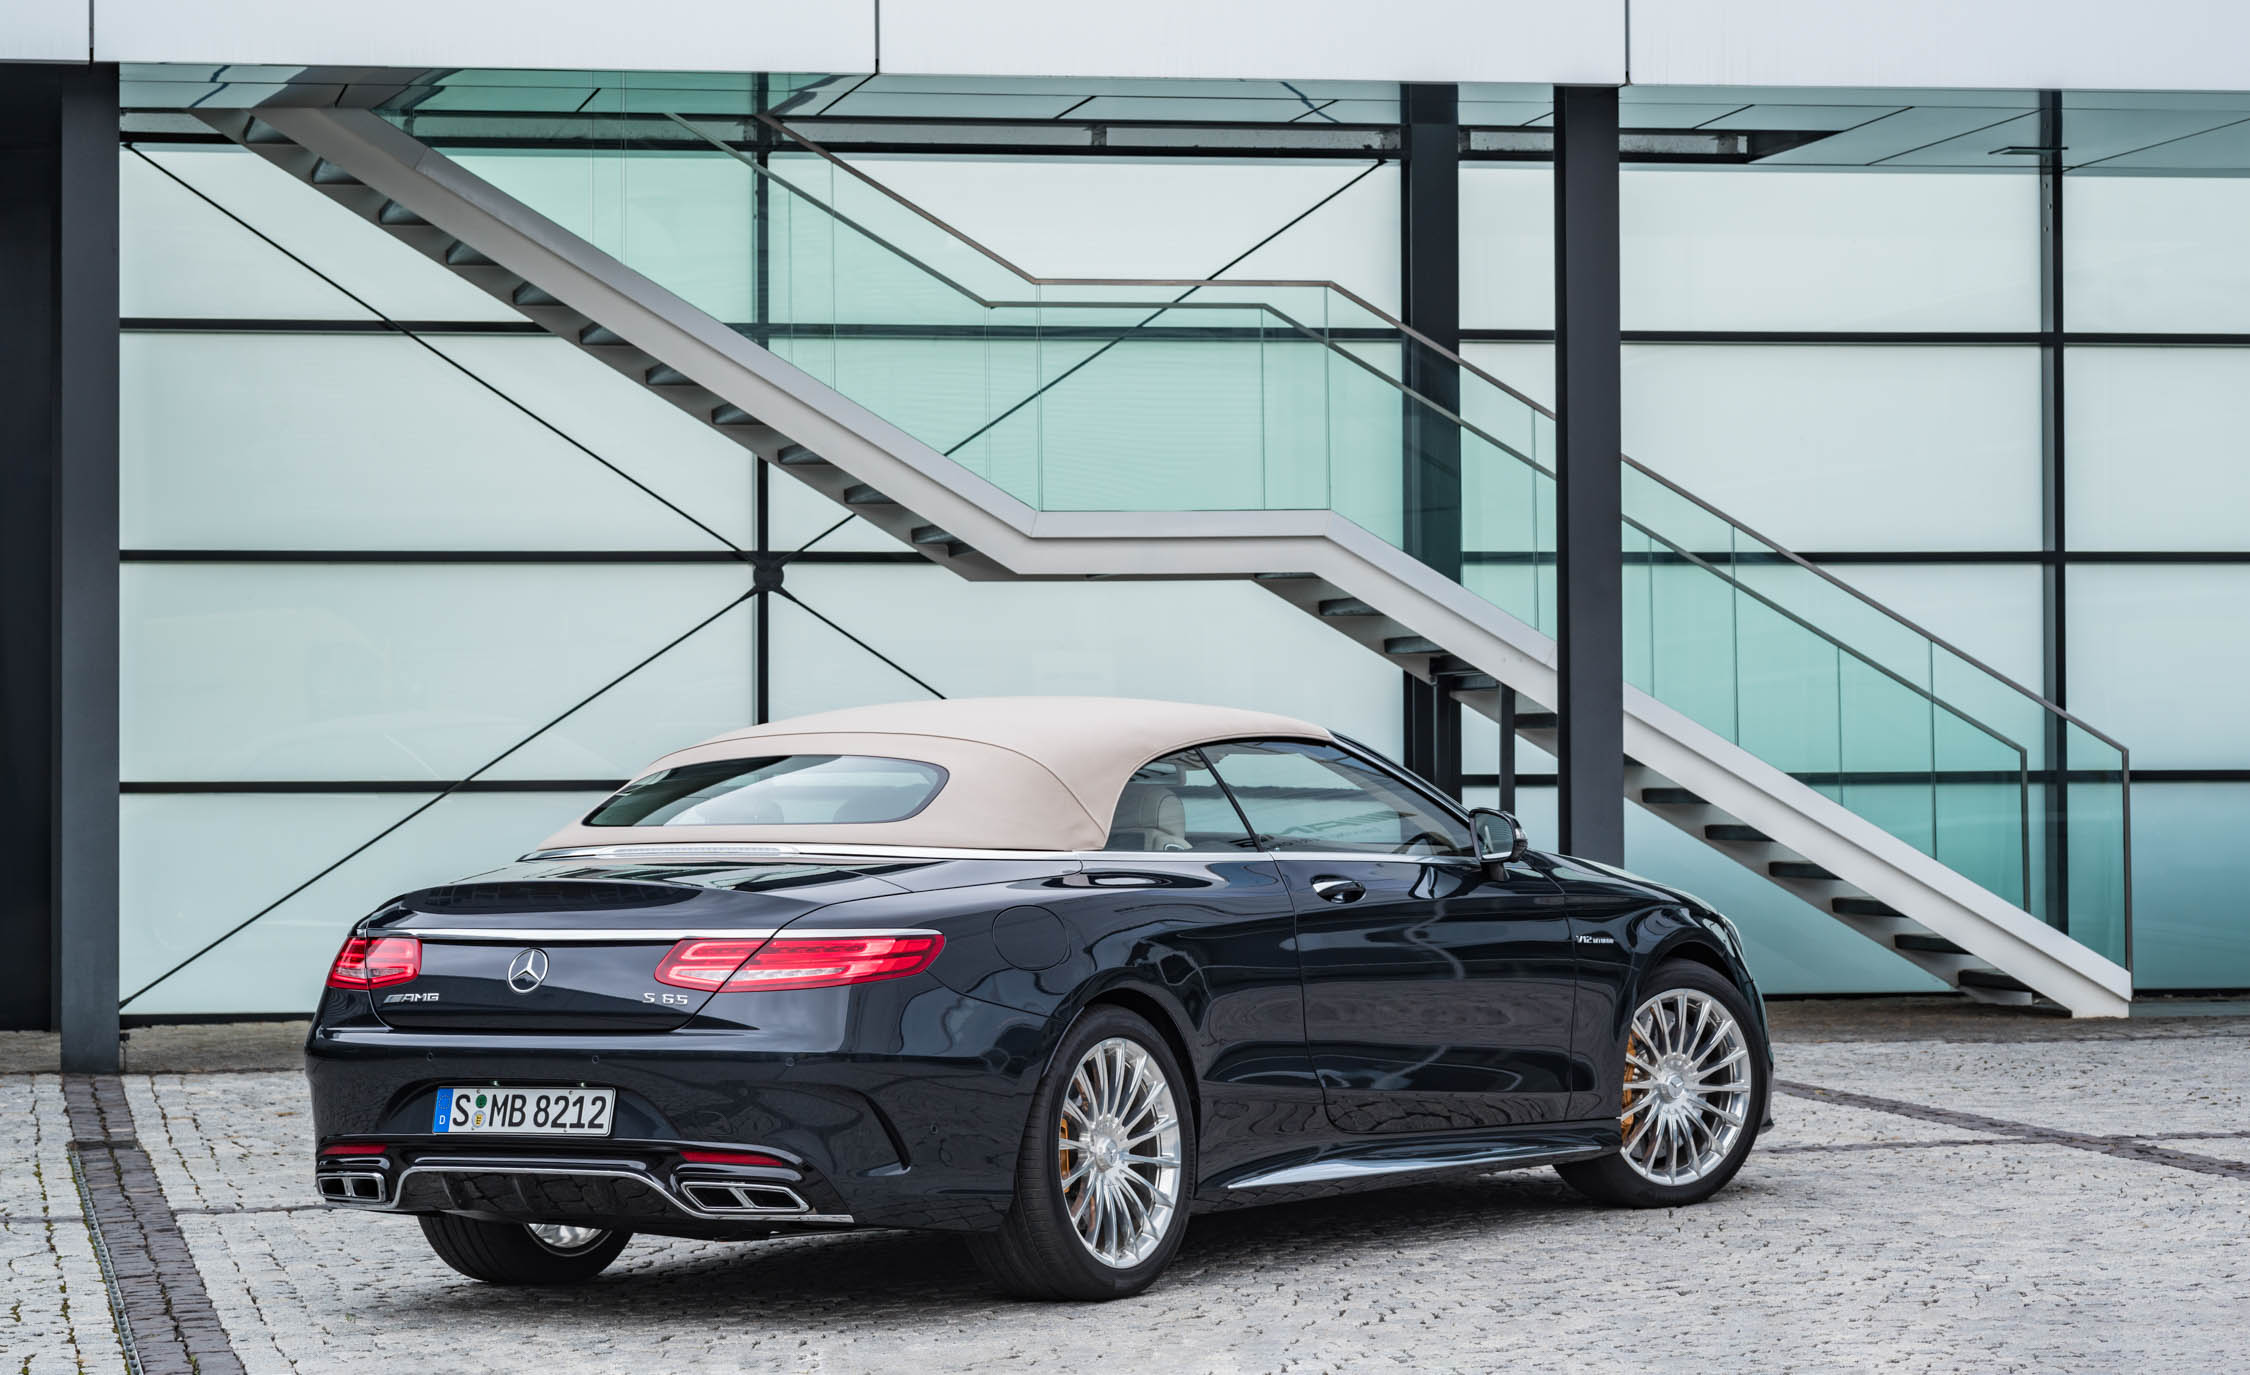 2017 Mercedes Amg S65 Cabriolet Exterior Rear And Side View Roof Close (Photo 13 of 15)